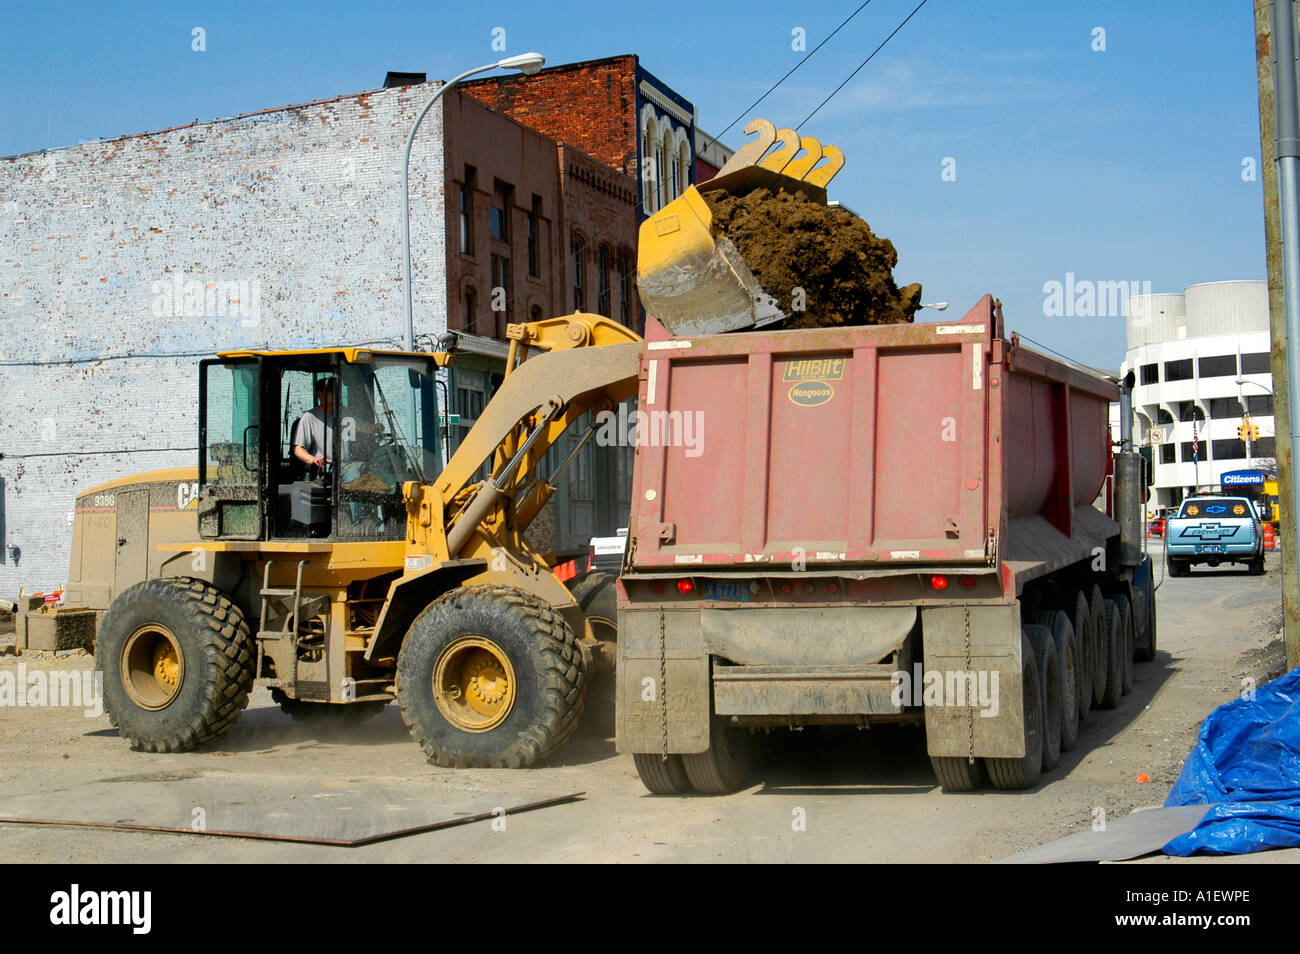 heavy equipment and manual labor us used in road repair and new rh alamy com heavy equipment manuals online heavy equipment manuals for grove rt58